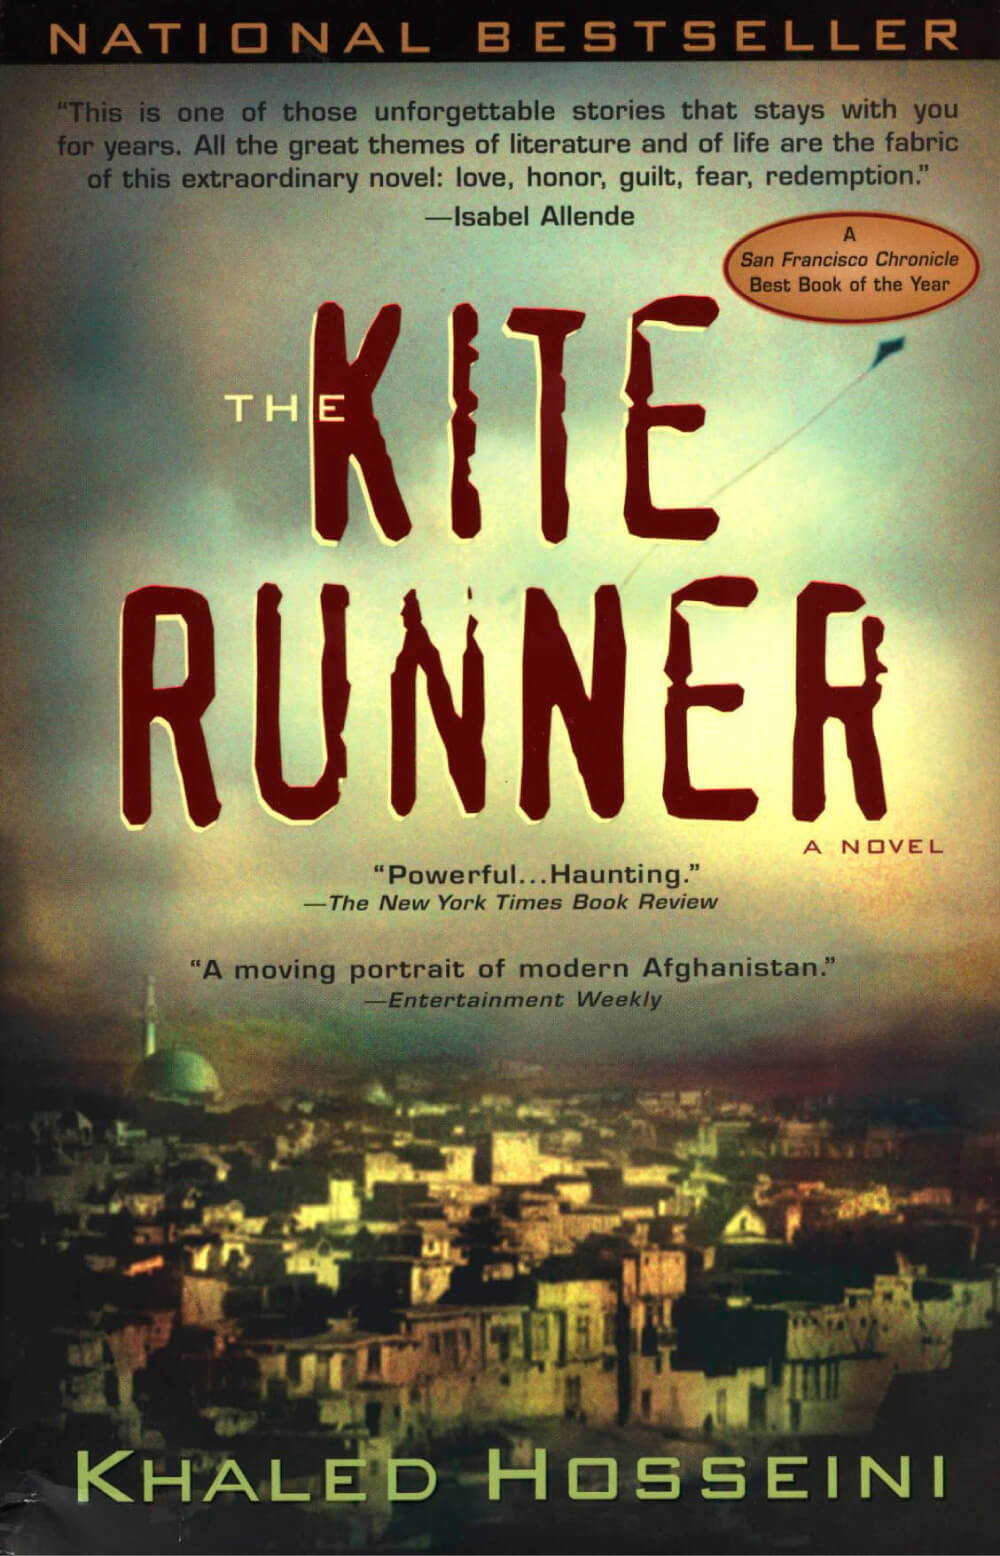 Summer Reading List 2018 The Kite Runner book